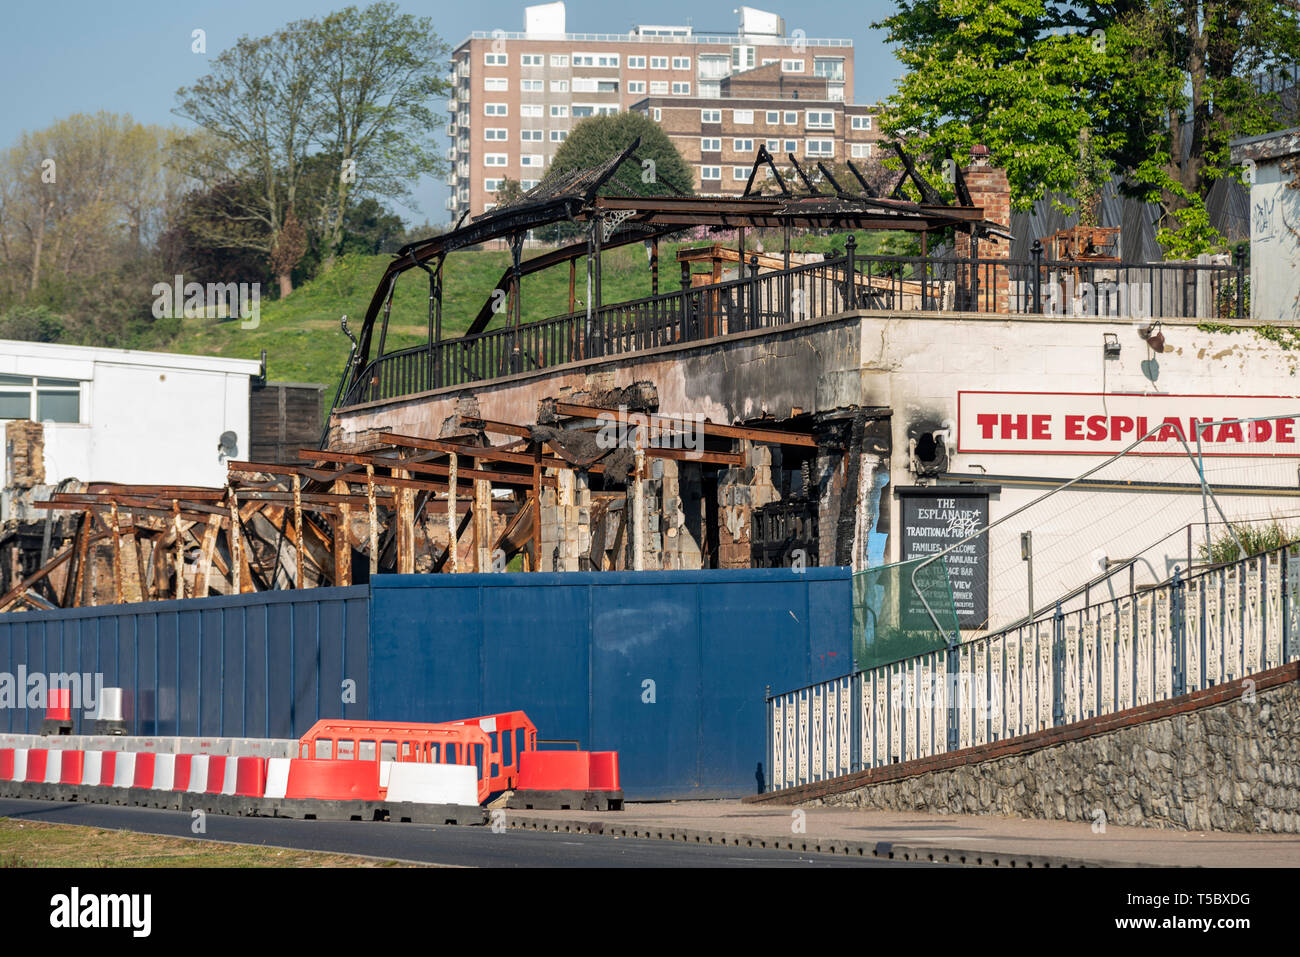 Ruins of The Esplanade pub after fire, carvery and music venue at Western Esplanade, Southend on Sea, Essex, seafront on a sunny day. Space for copy - Stock Image